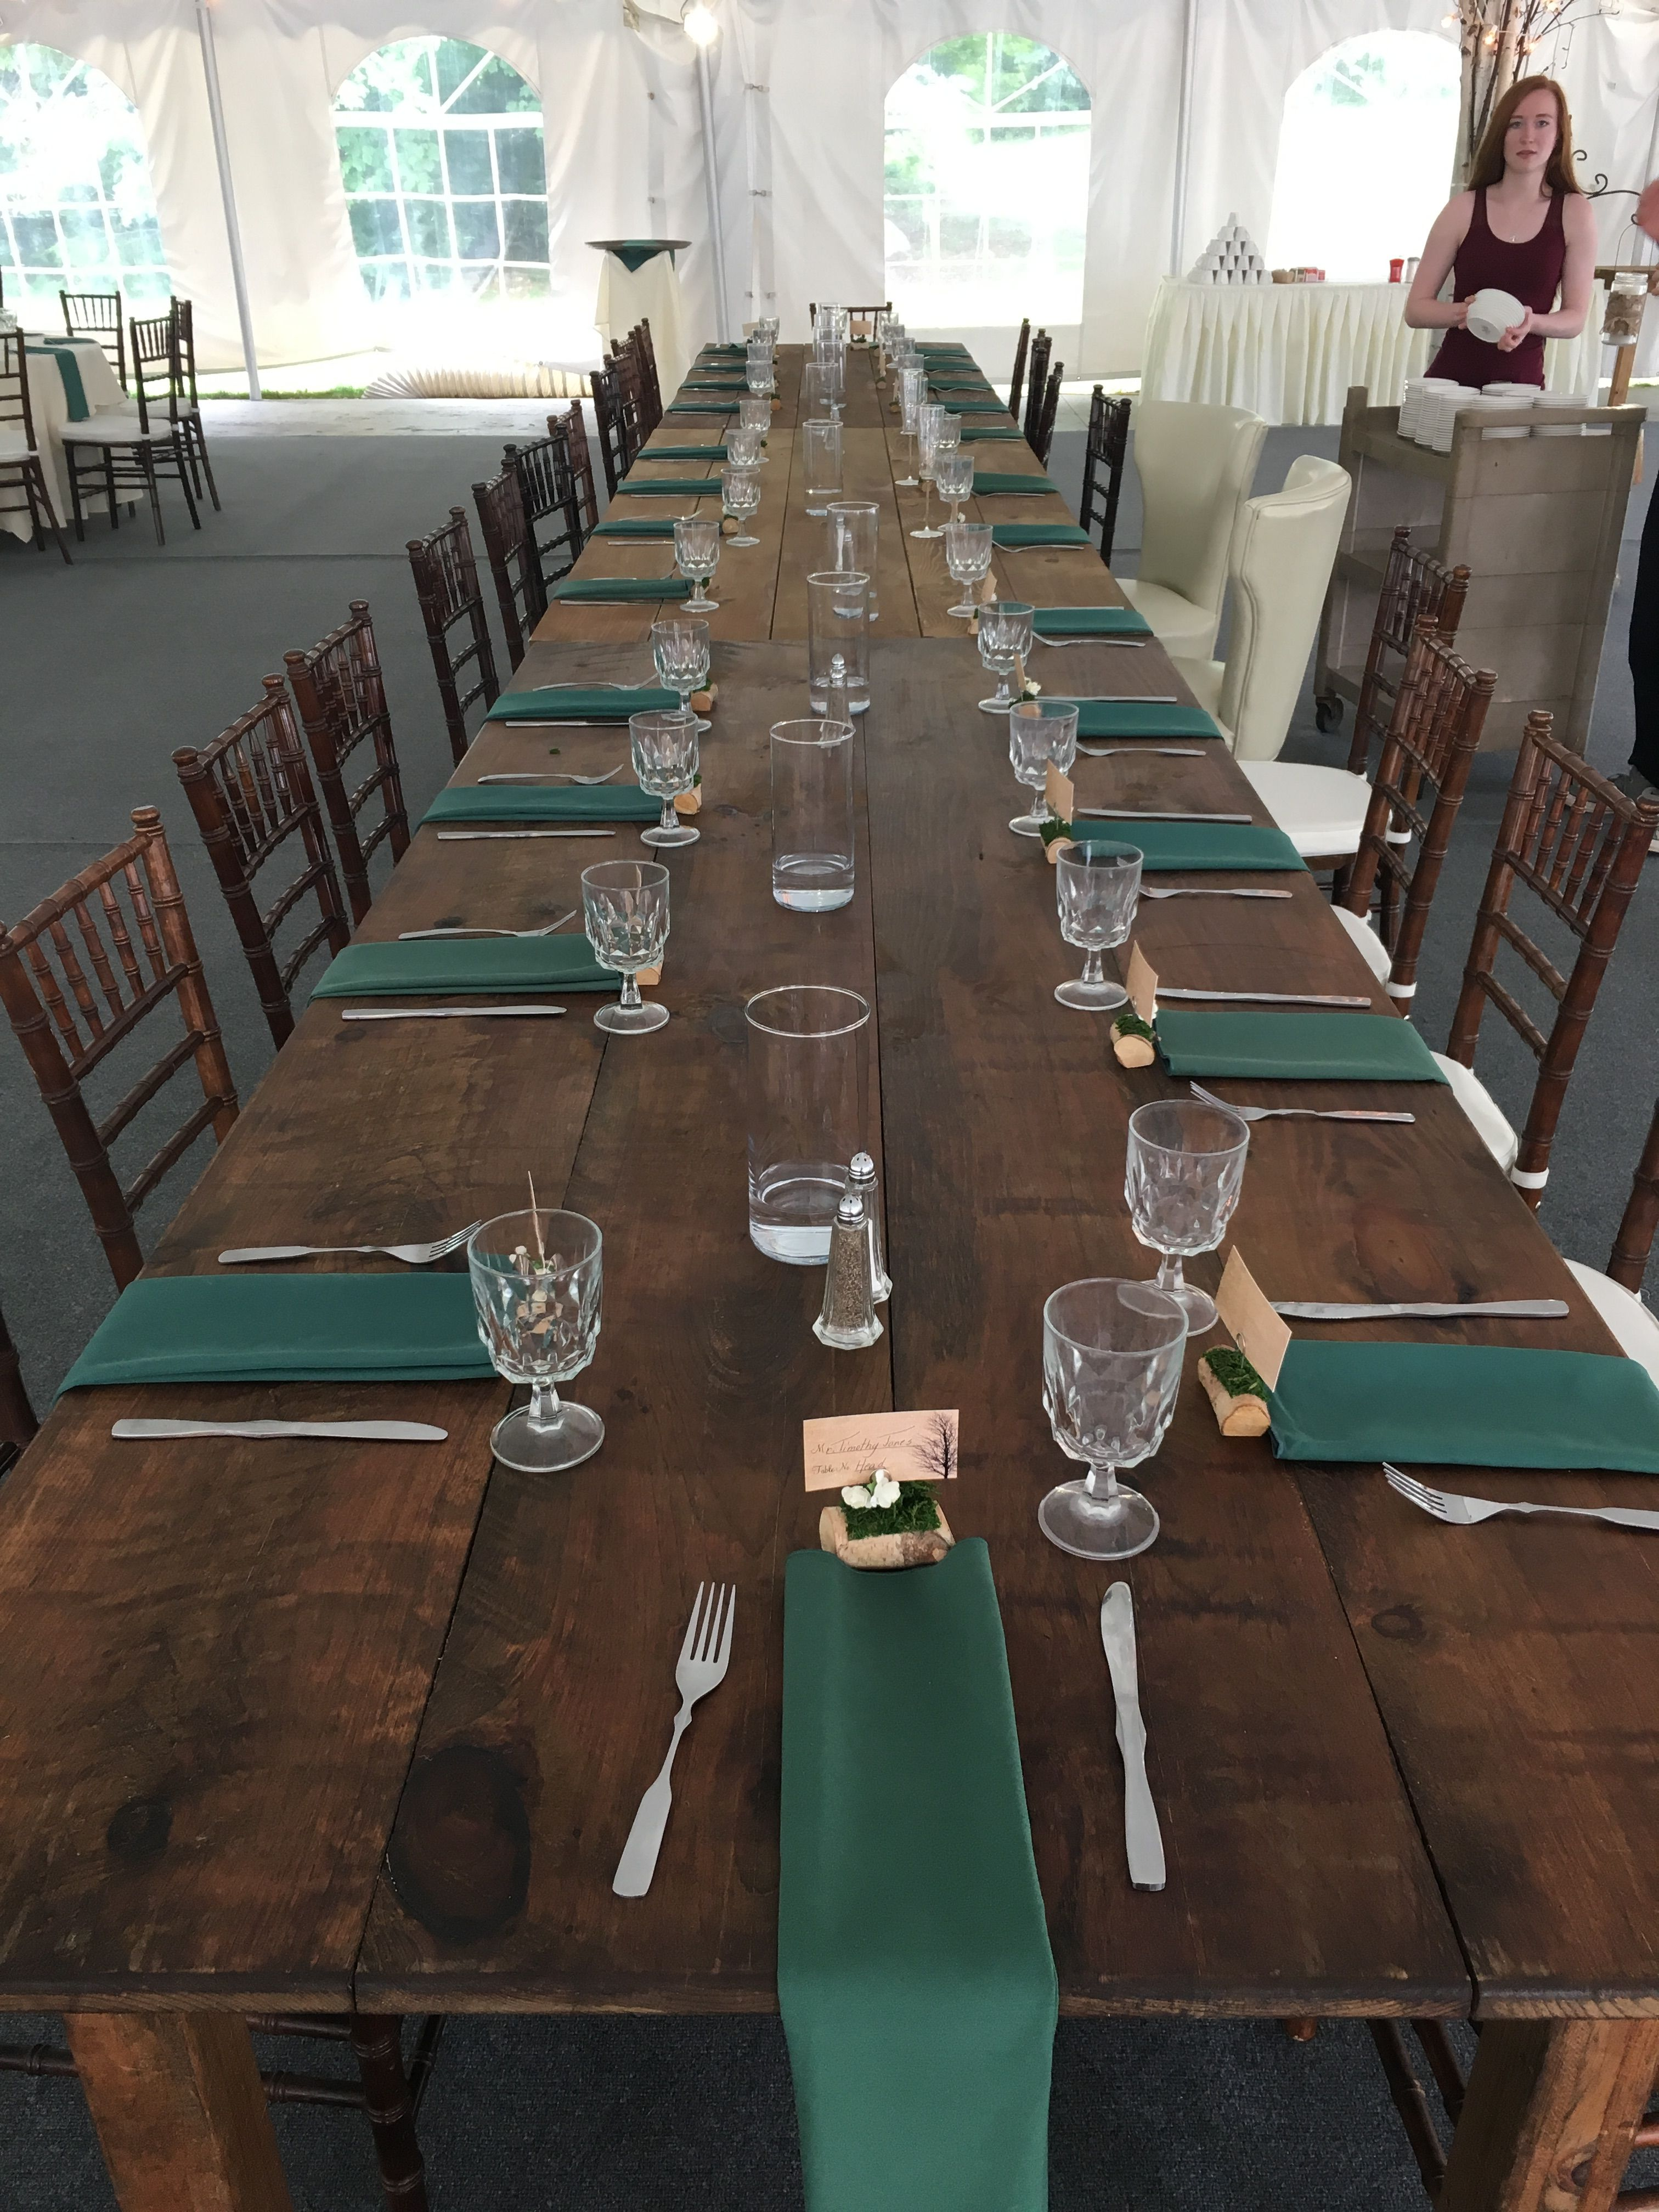 Head table setup on 7/7 with an upgrade using the farm